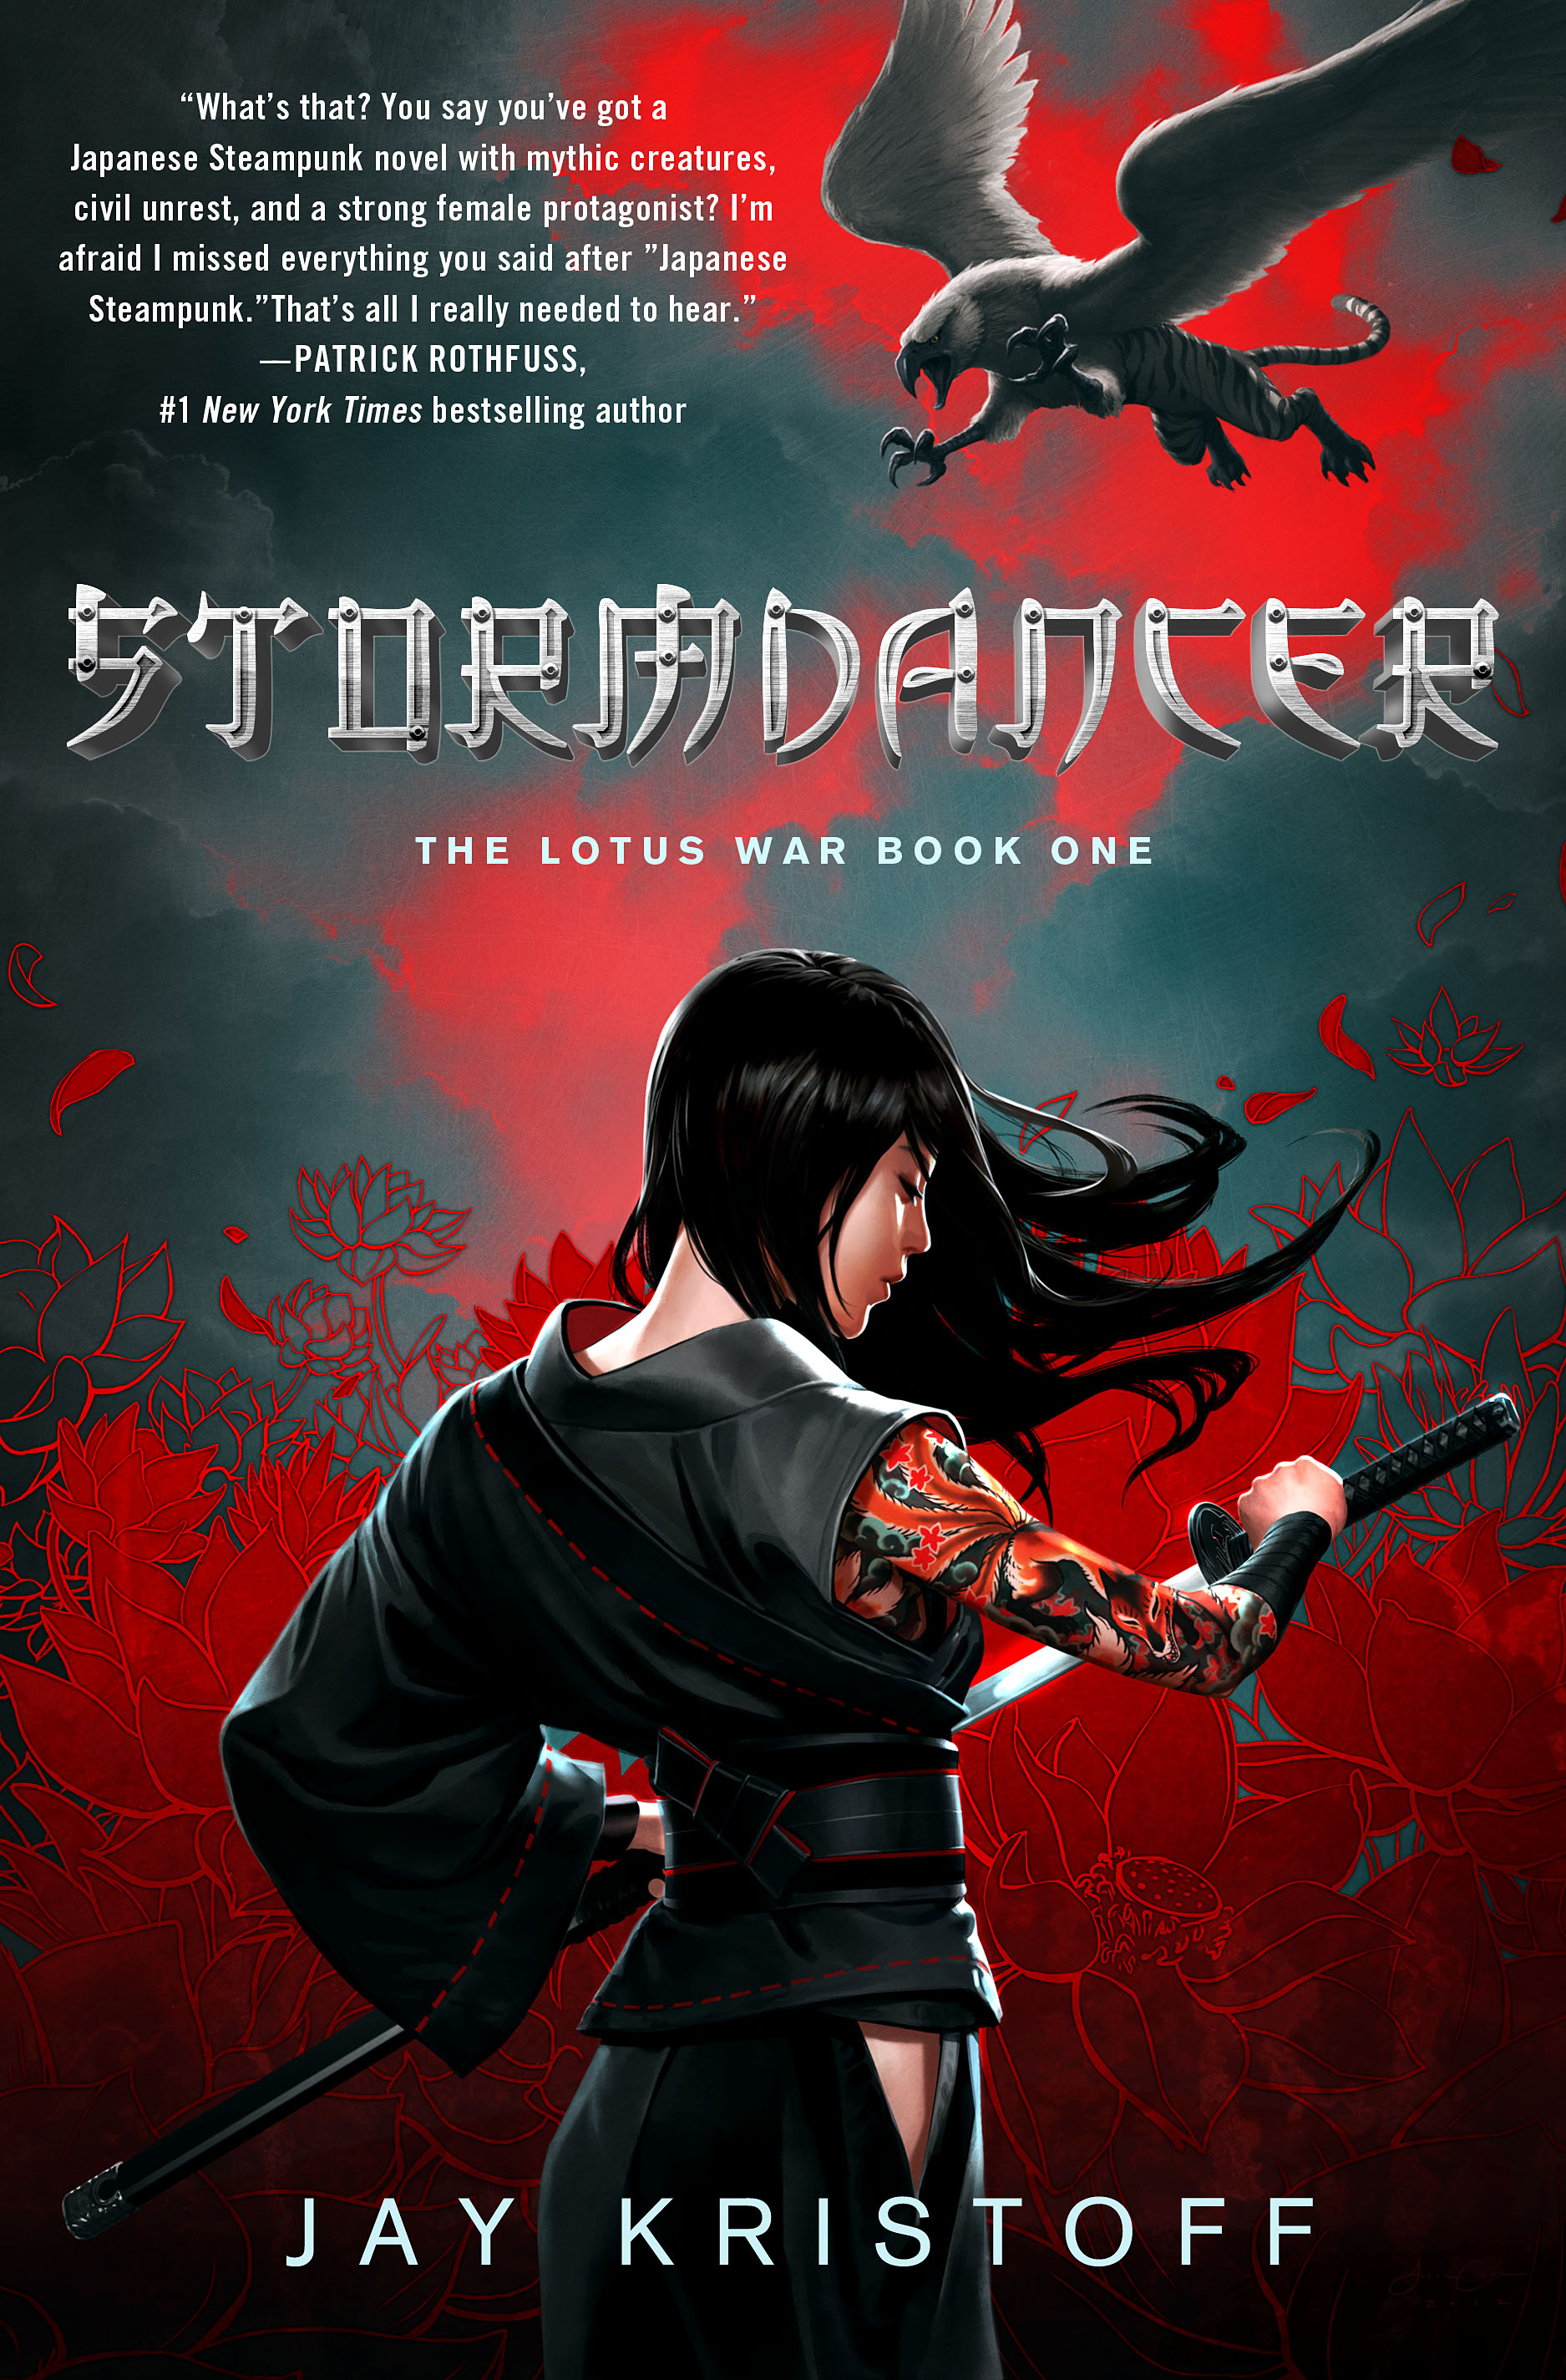 Image result for stormdancer book cover